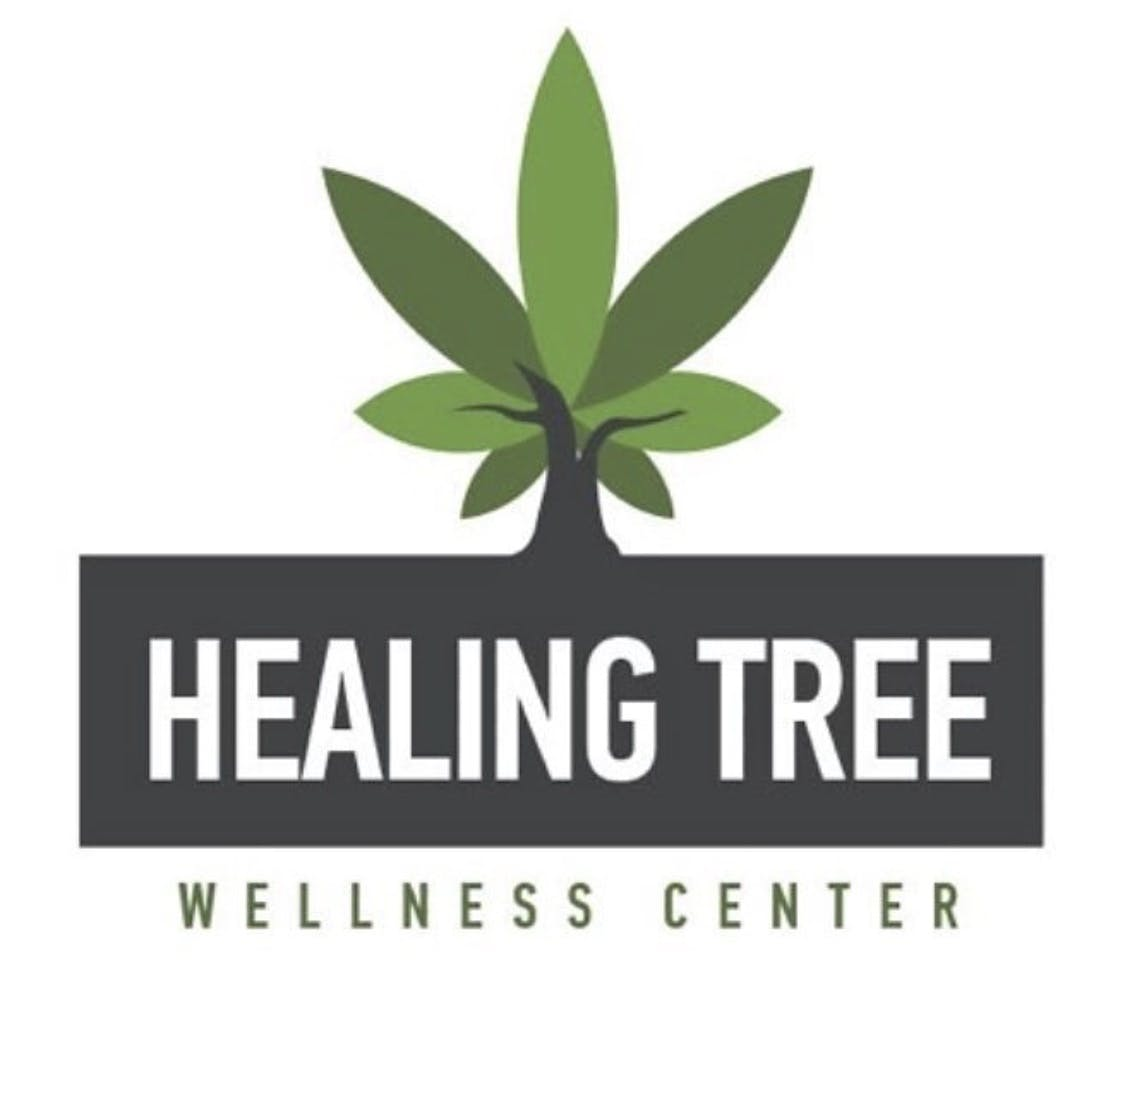 Healing Tree Wellness Center - Medical Marijuana Doctors - Cannabizme.com